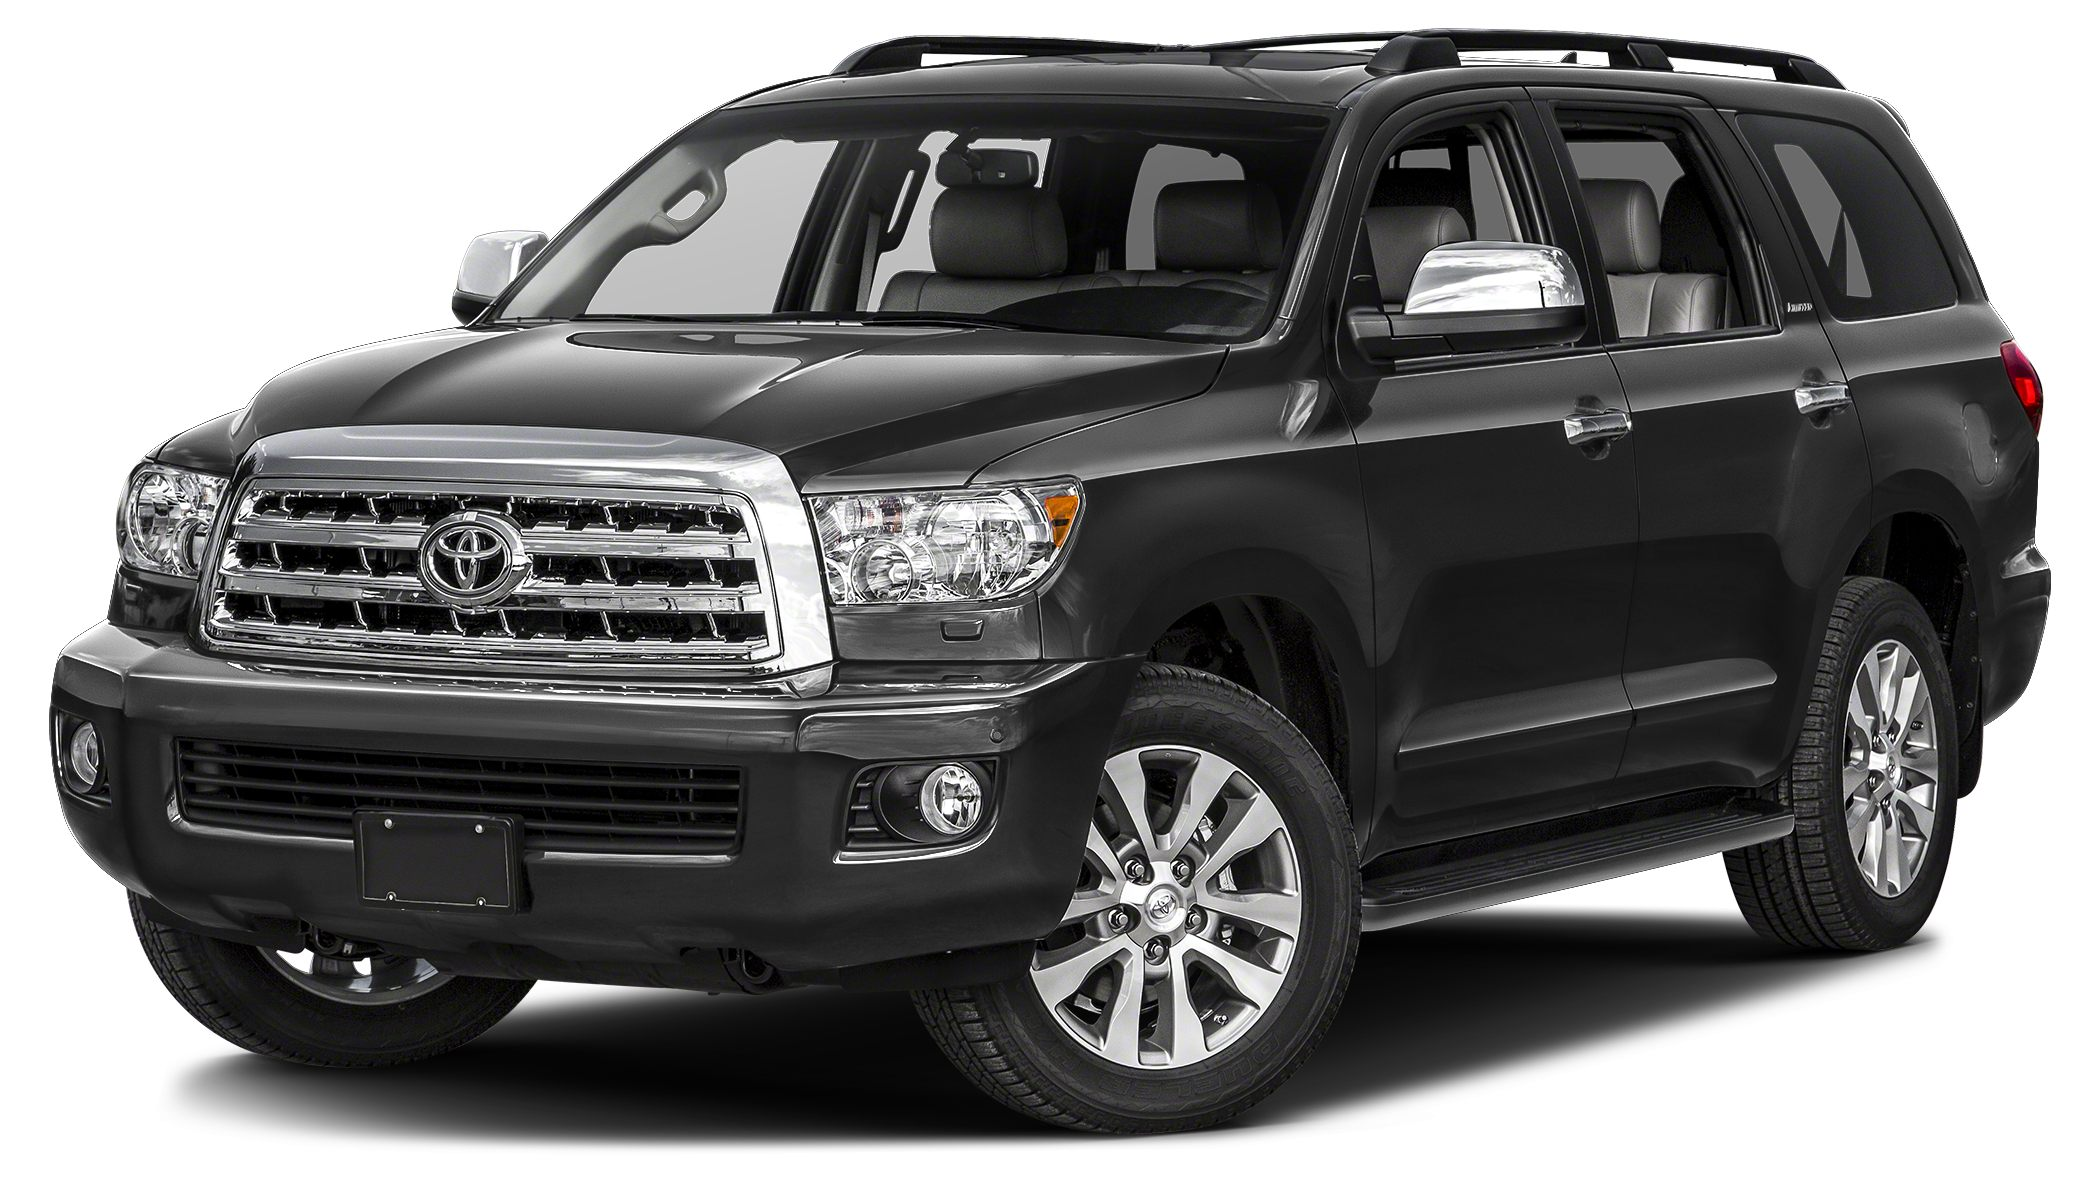 2017 Toyota Sequoia Limited 2017 Toyota Sequoia Limited Optional equipment includes Safety  Conv